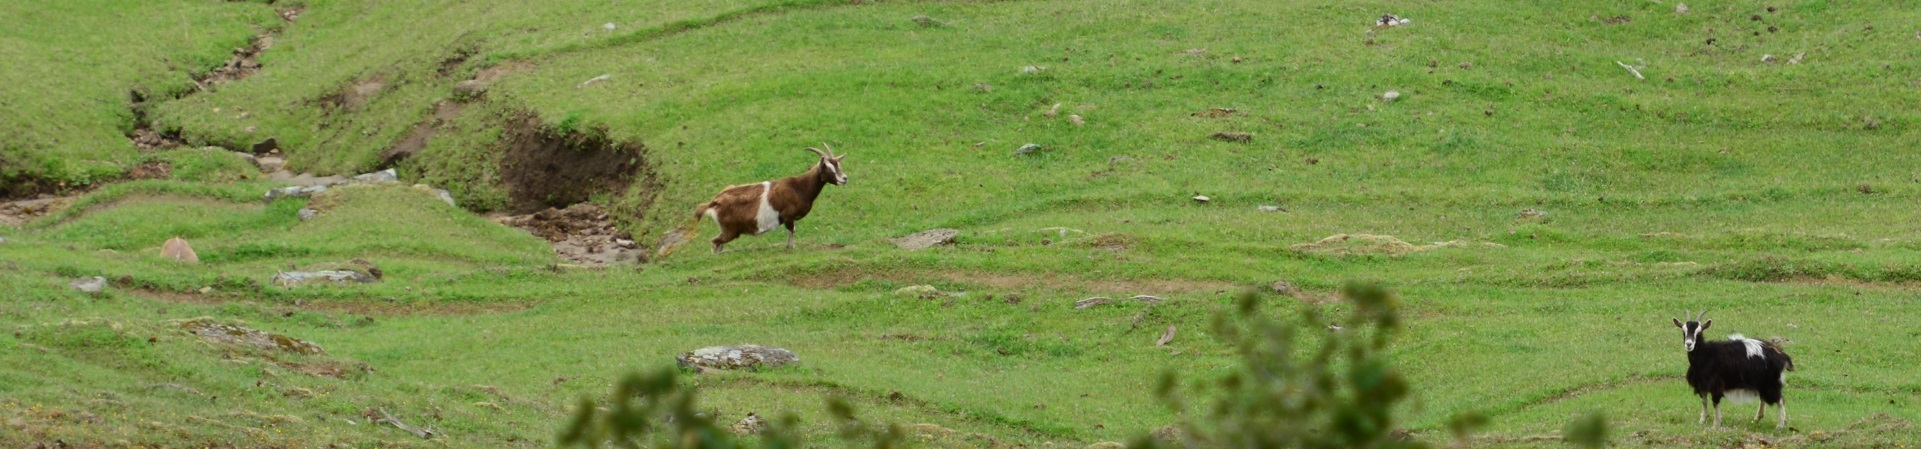 two goats in a big green field